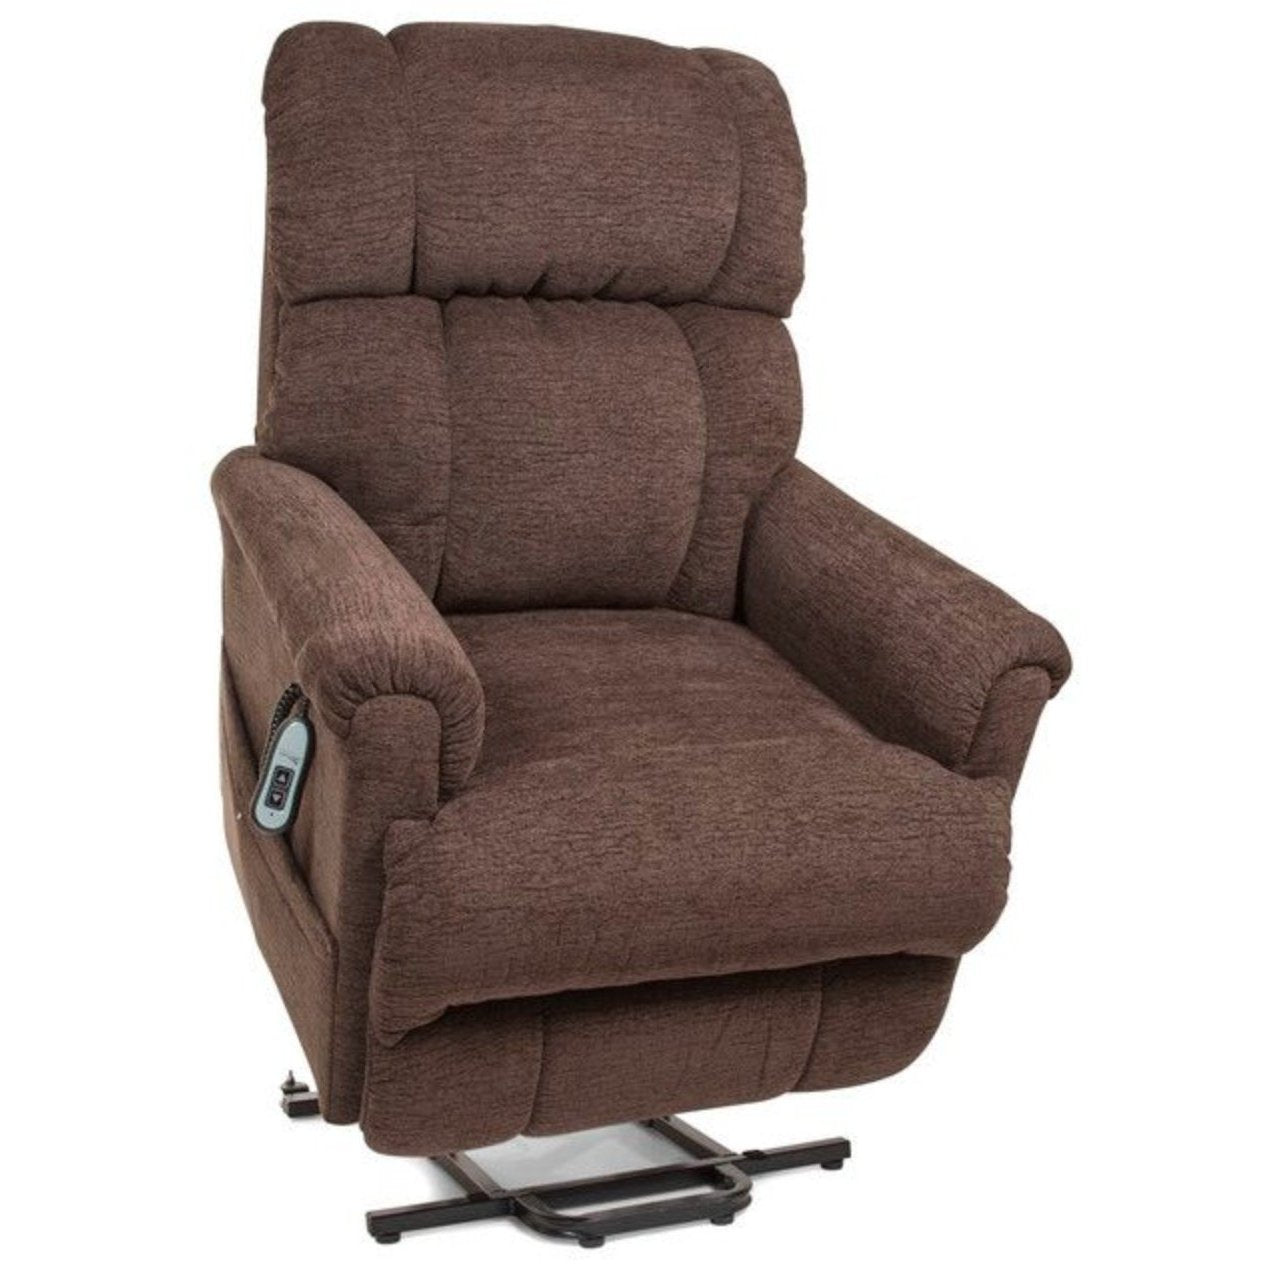 all free recliners ultra spencer ma at lift chair comfort in delivery furniture on pin comforter